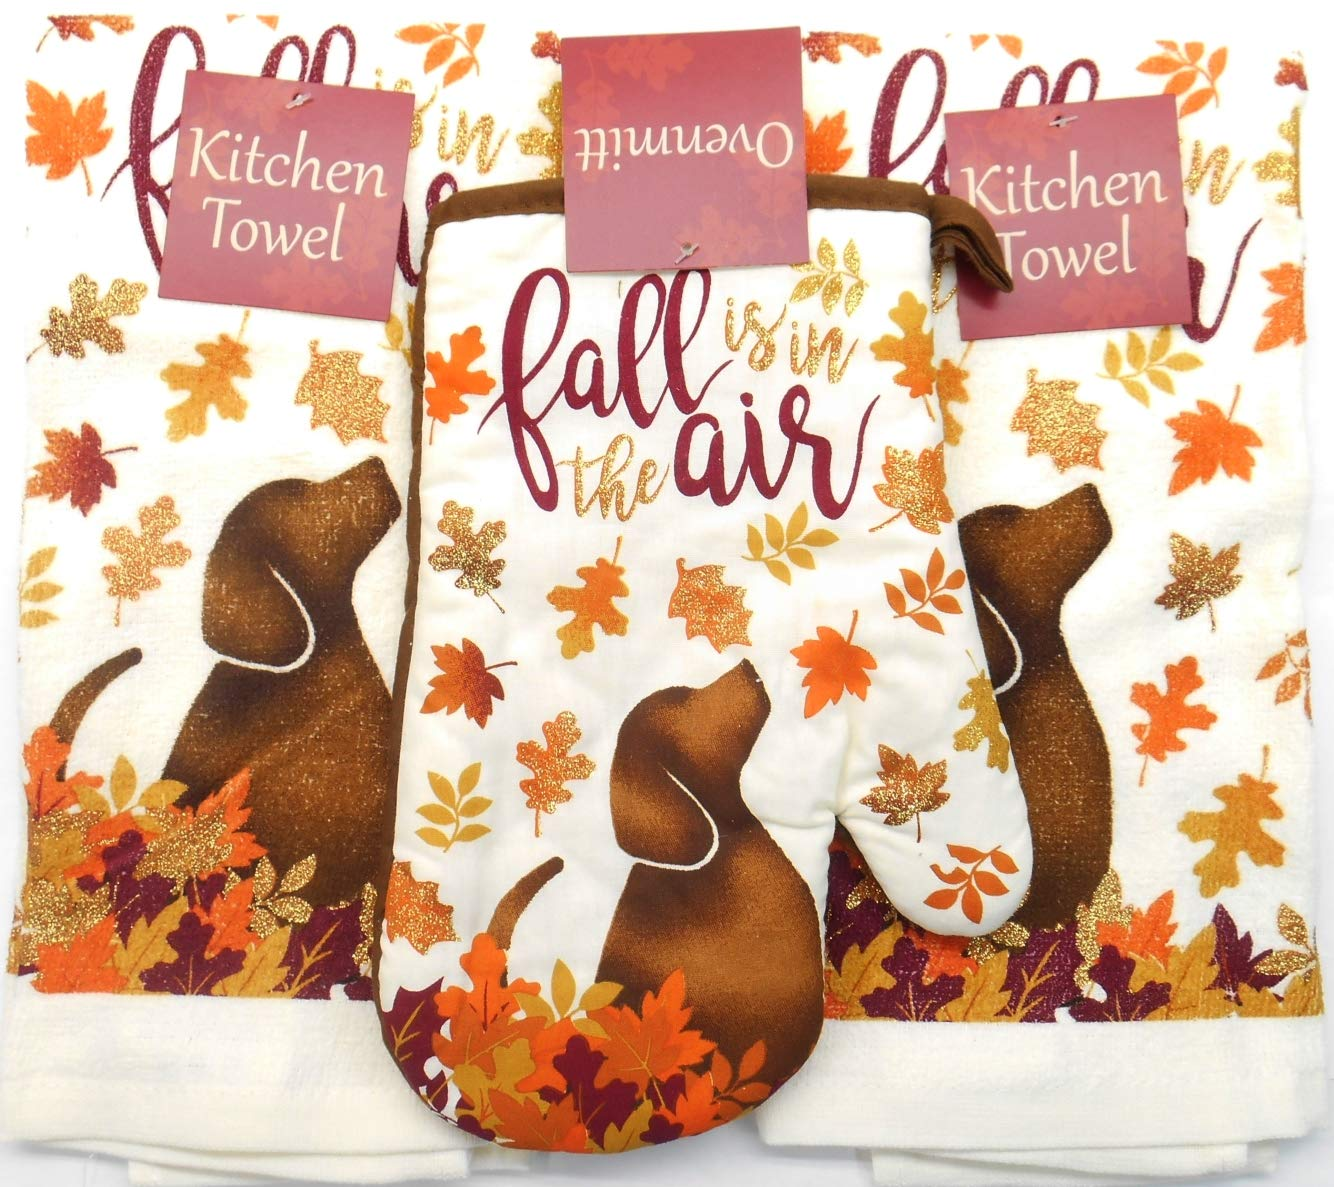 Fall Autumn Kitchen Towel Set is in the Air with Dog and Glitter. 3 Piece Bundle Set includes 2 Towels and 1 Ovenmit Mainstream